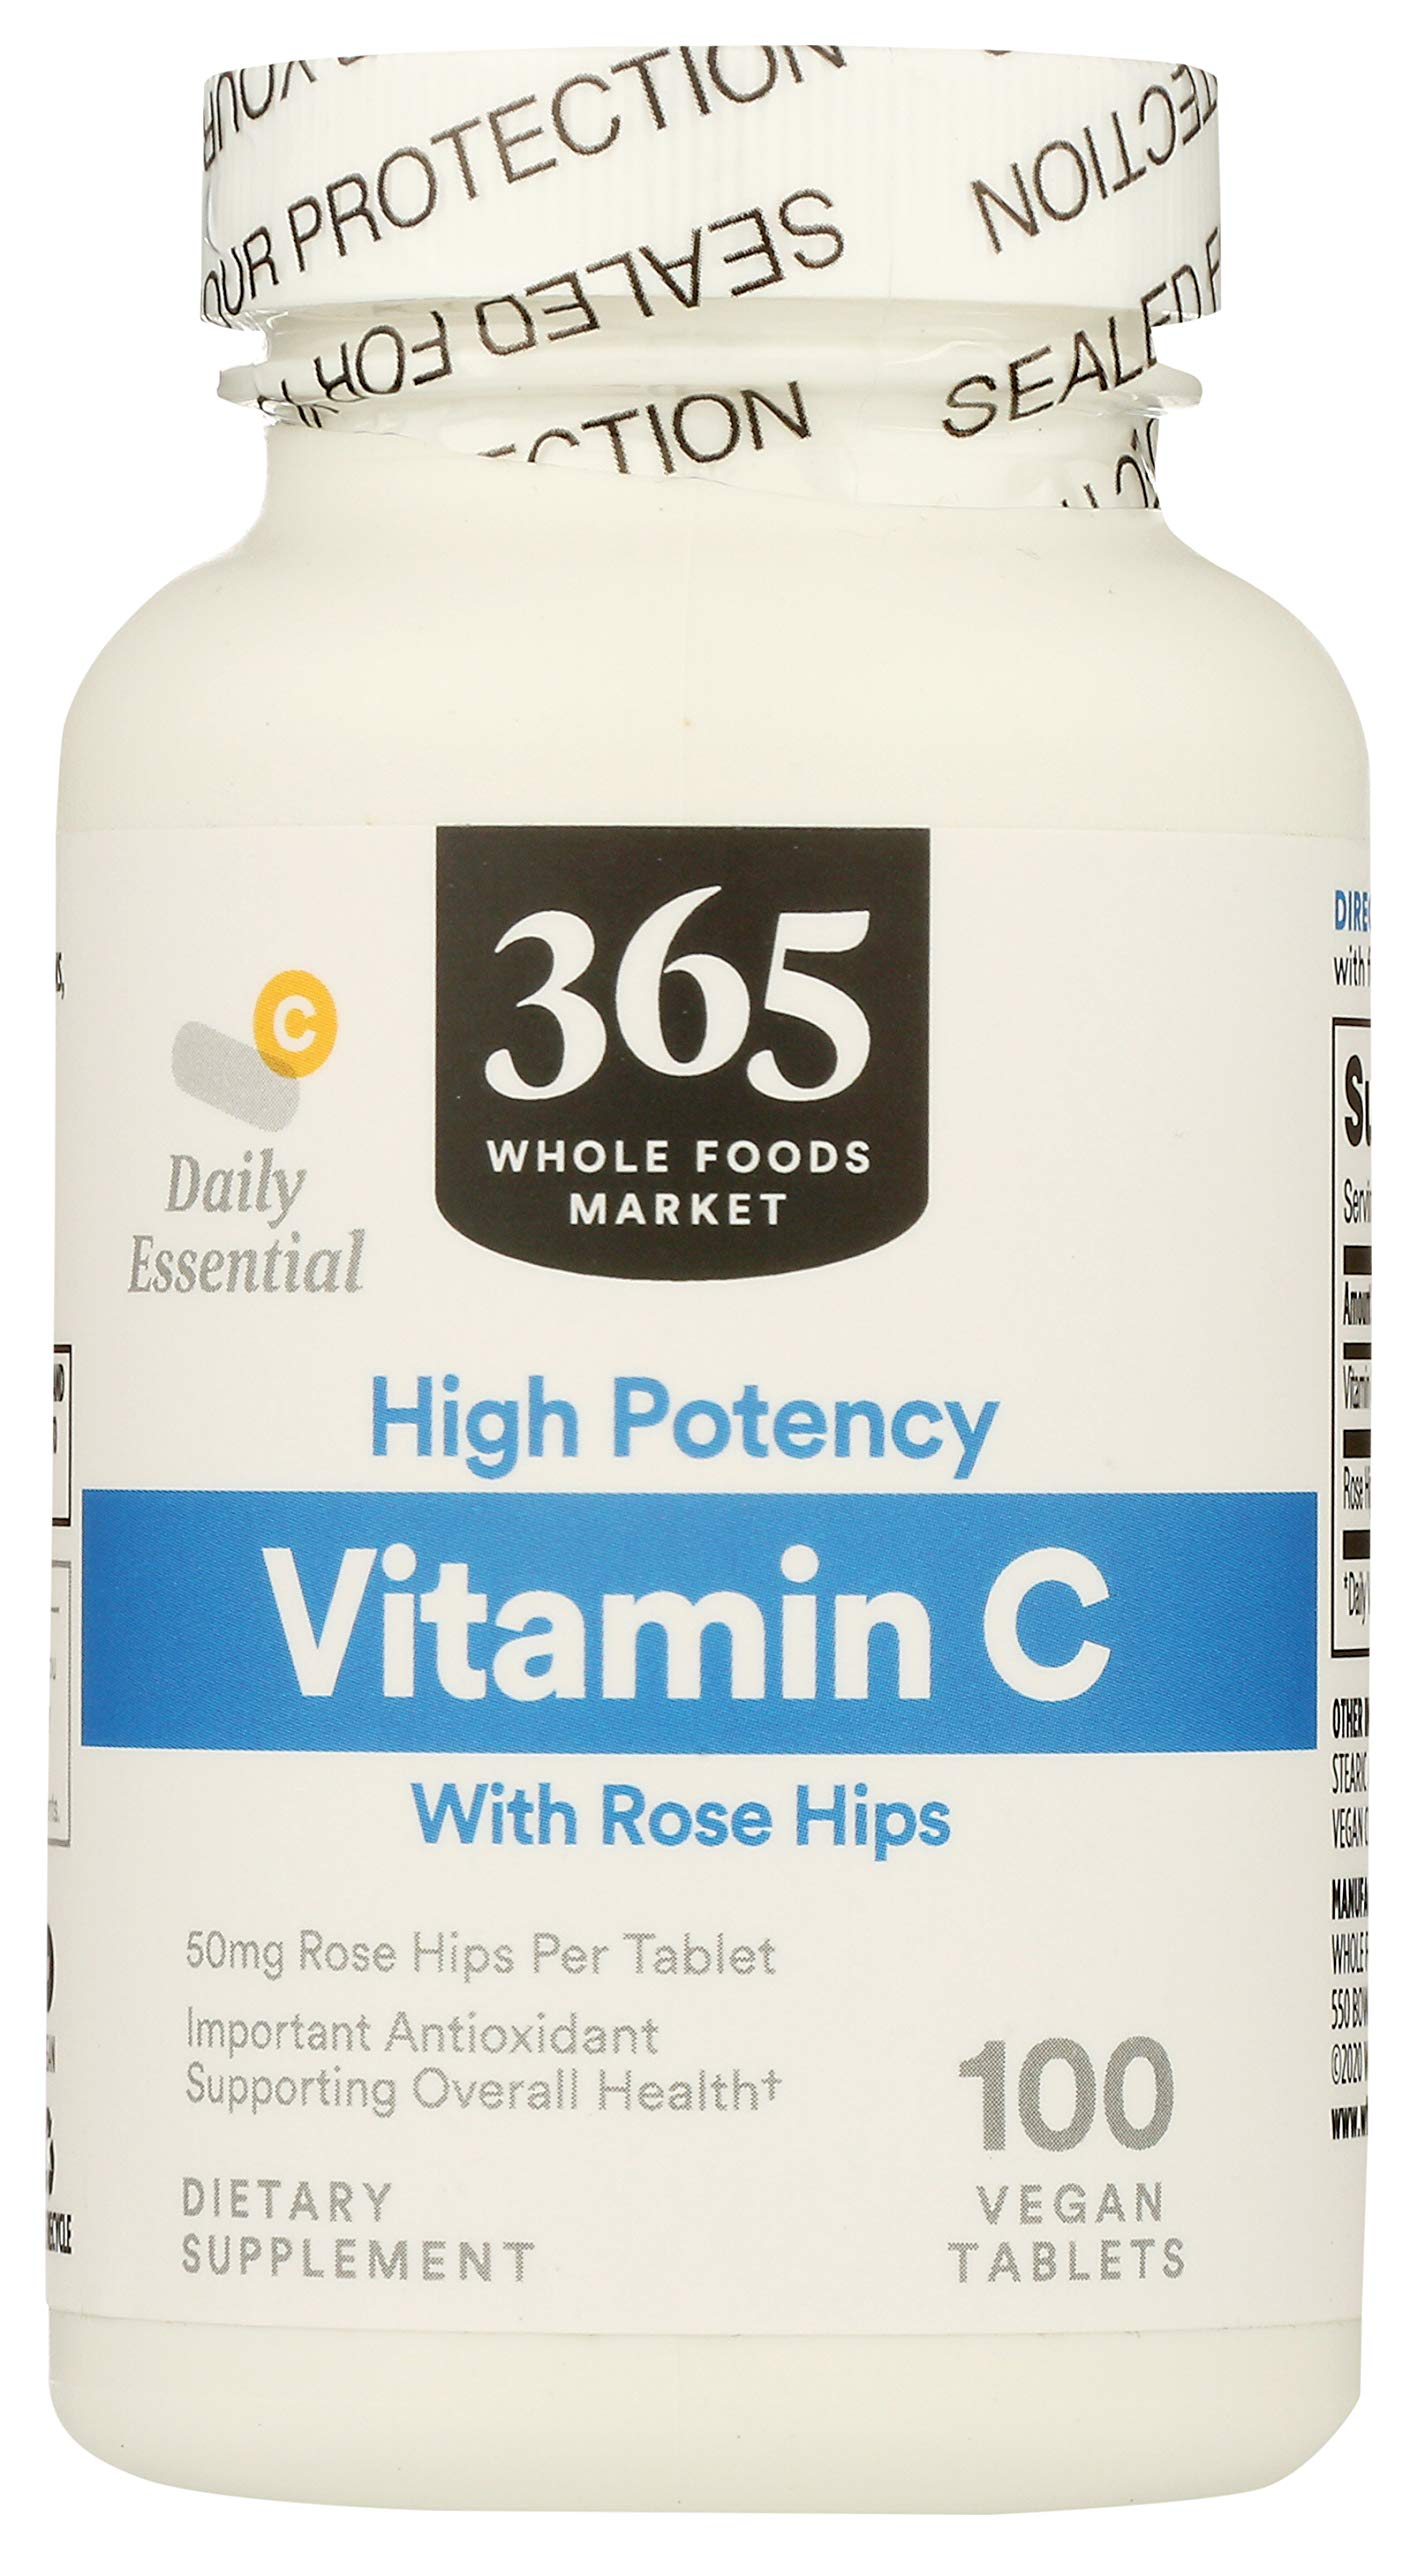 365 by Whole Foods Market, Supplements - Vitamins, C with Rose Hips - High Potency (Vegan Tablets), 100 Count